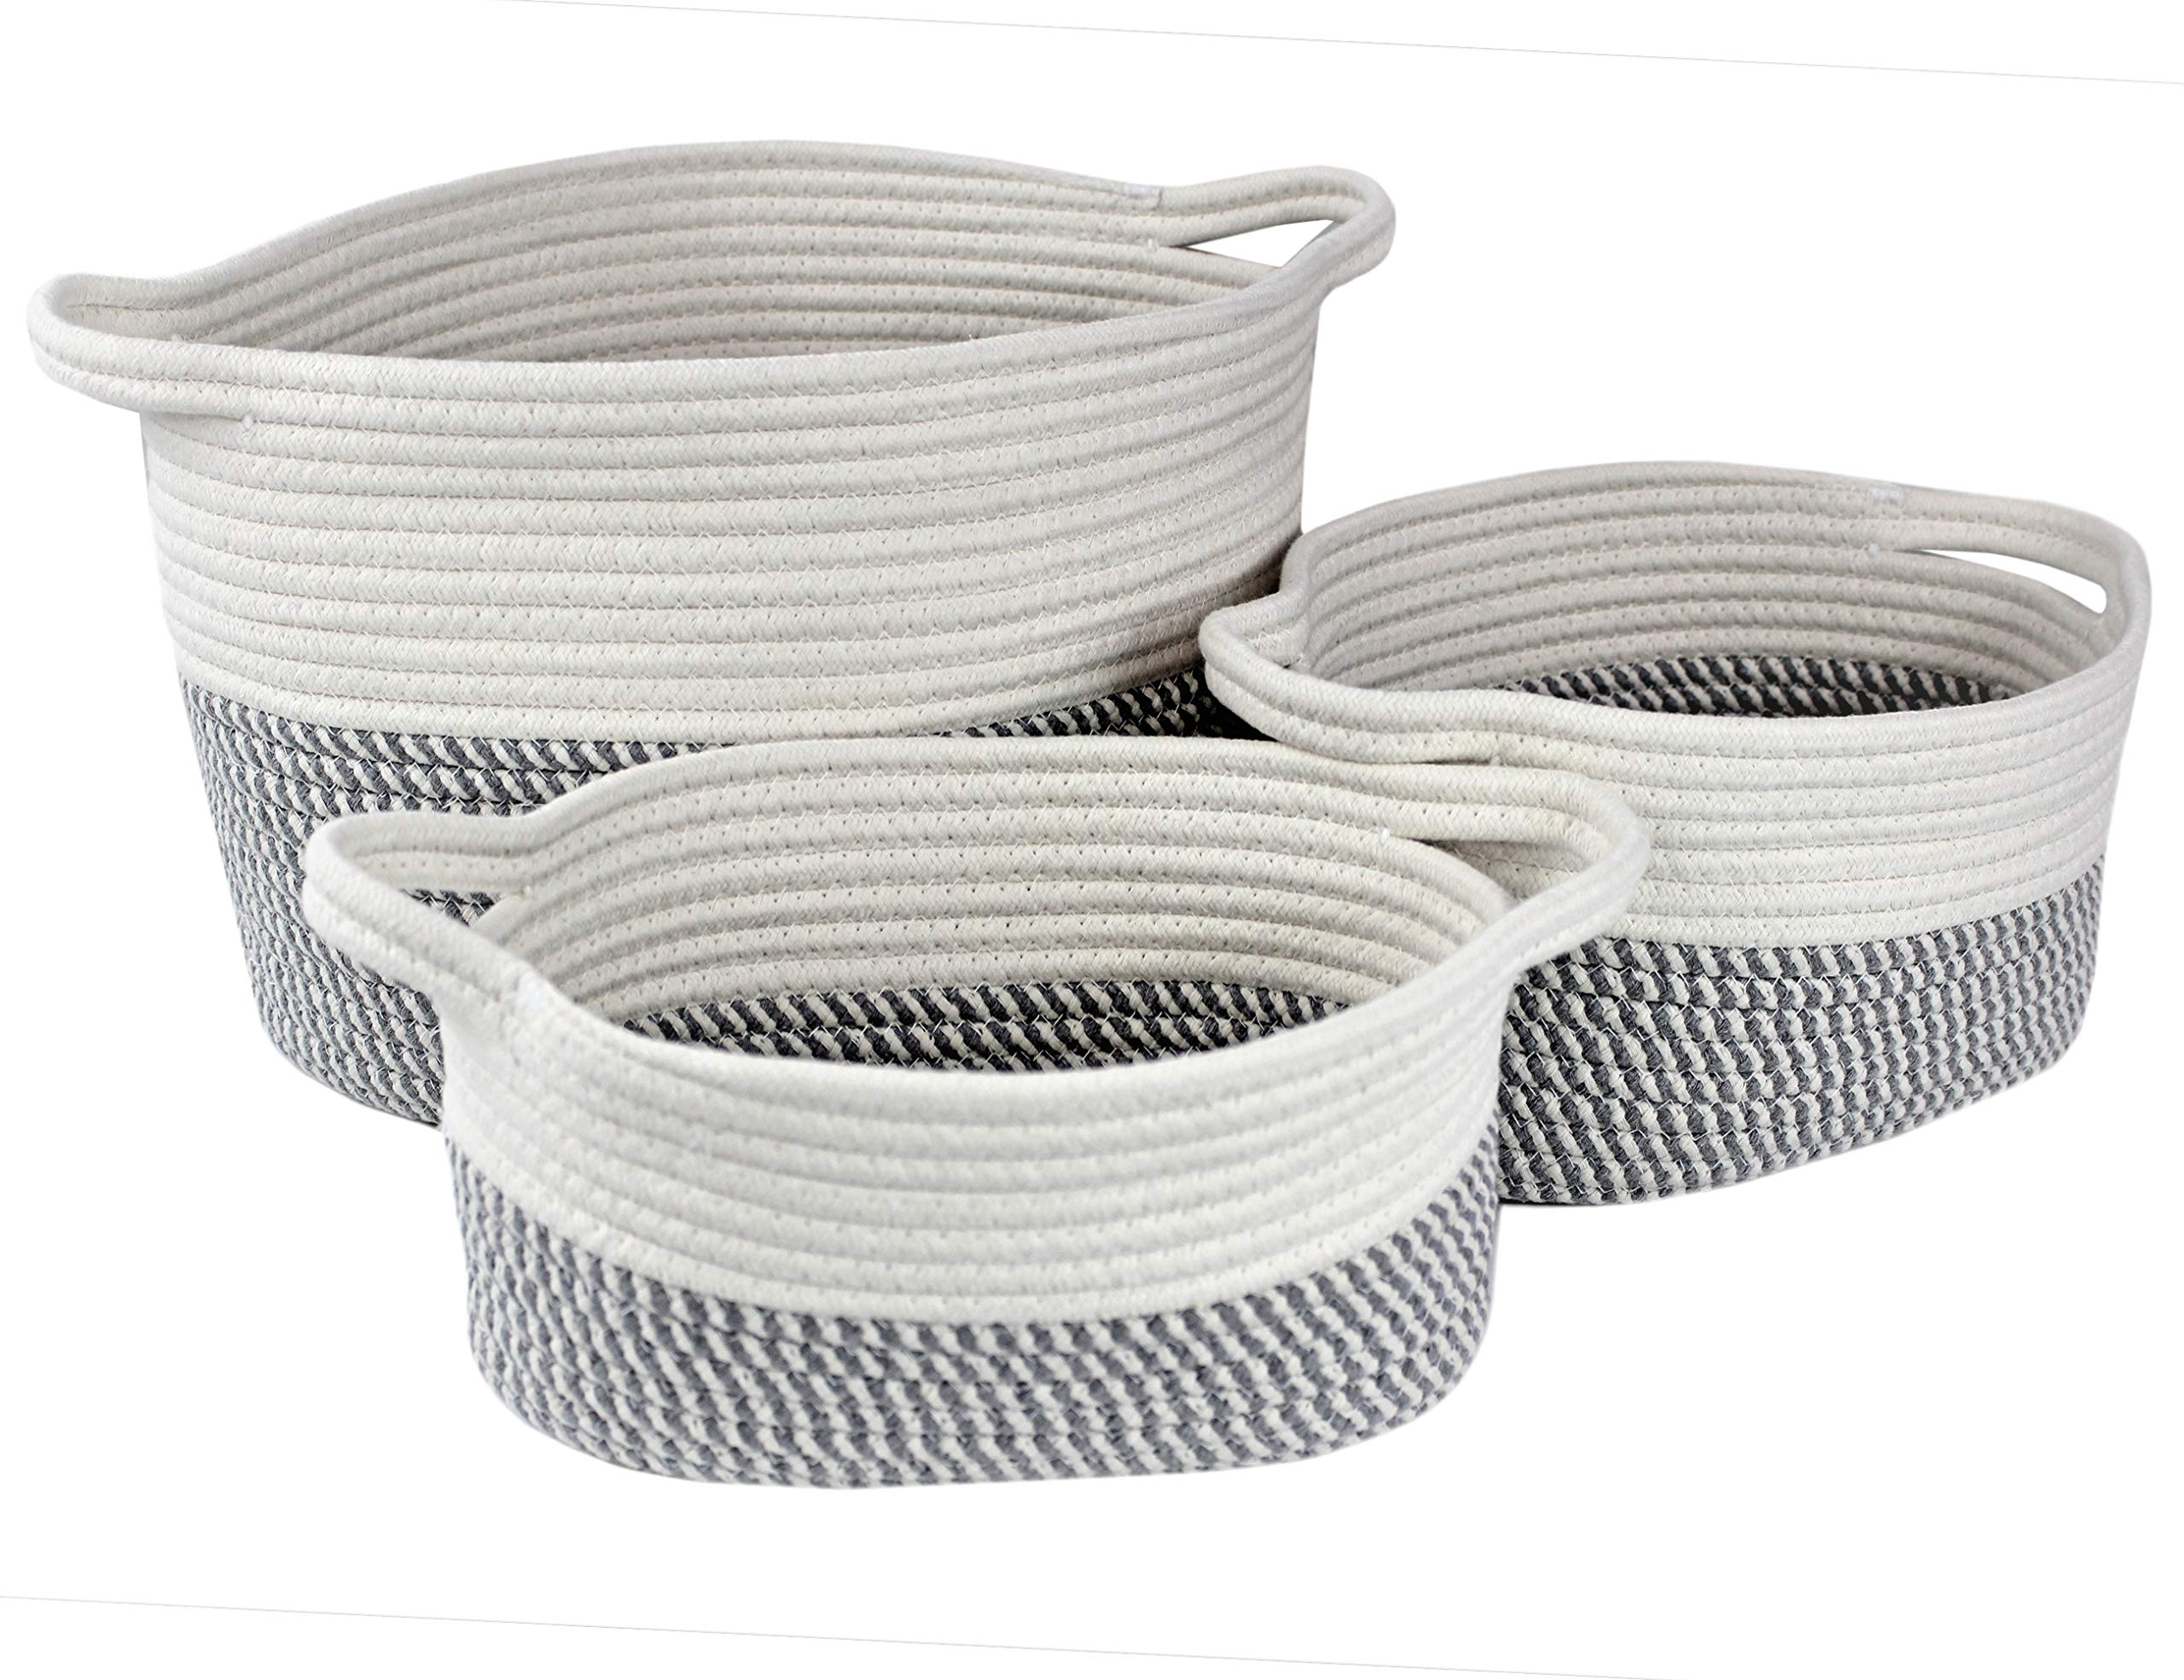 Use these baskets for everything-great quality